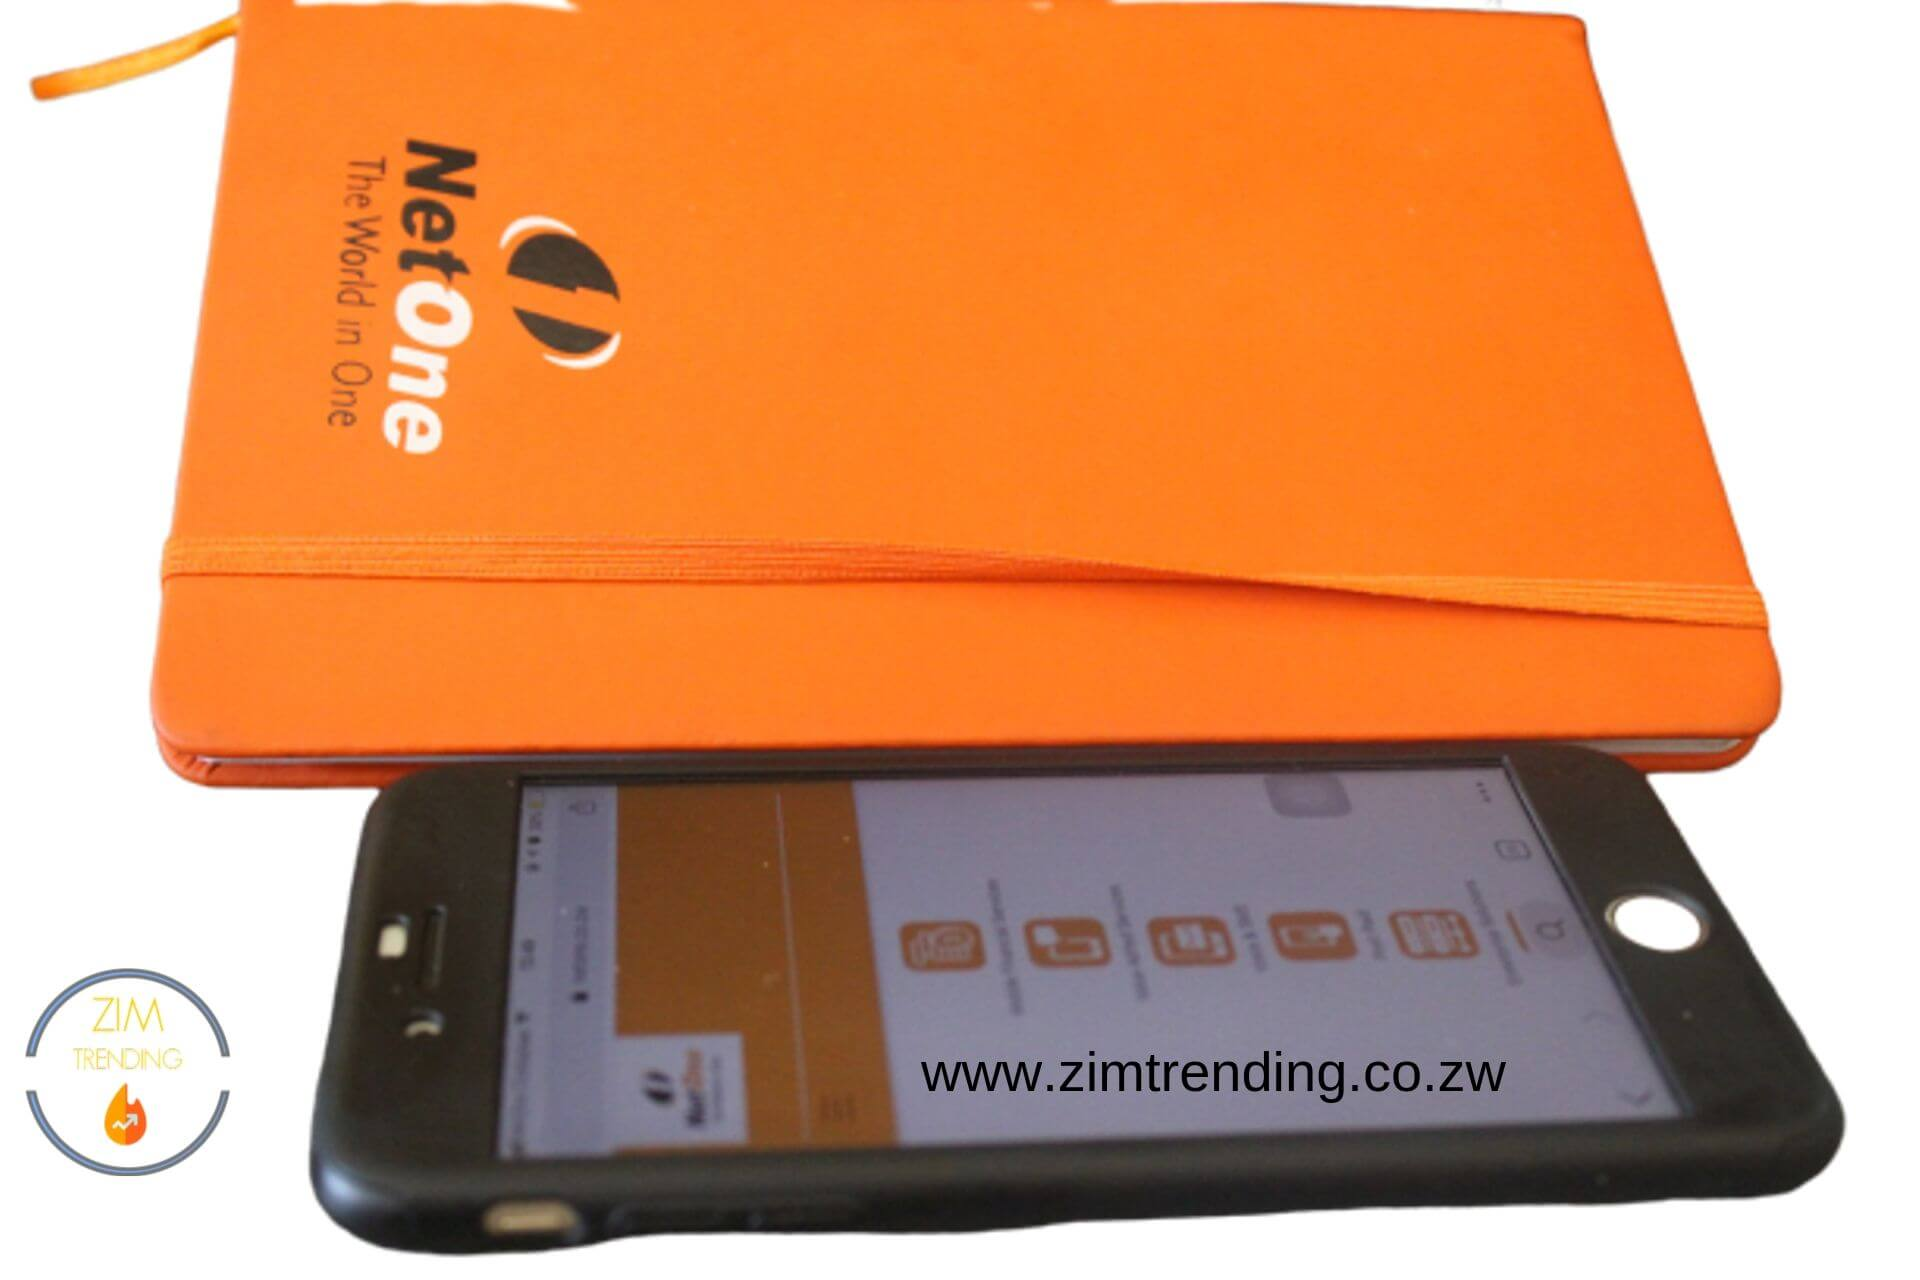 Netone Introduces Out Of Bundle Browsing